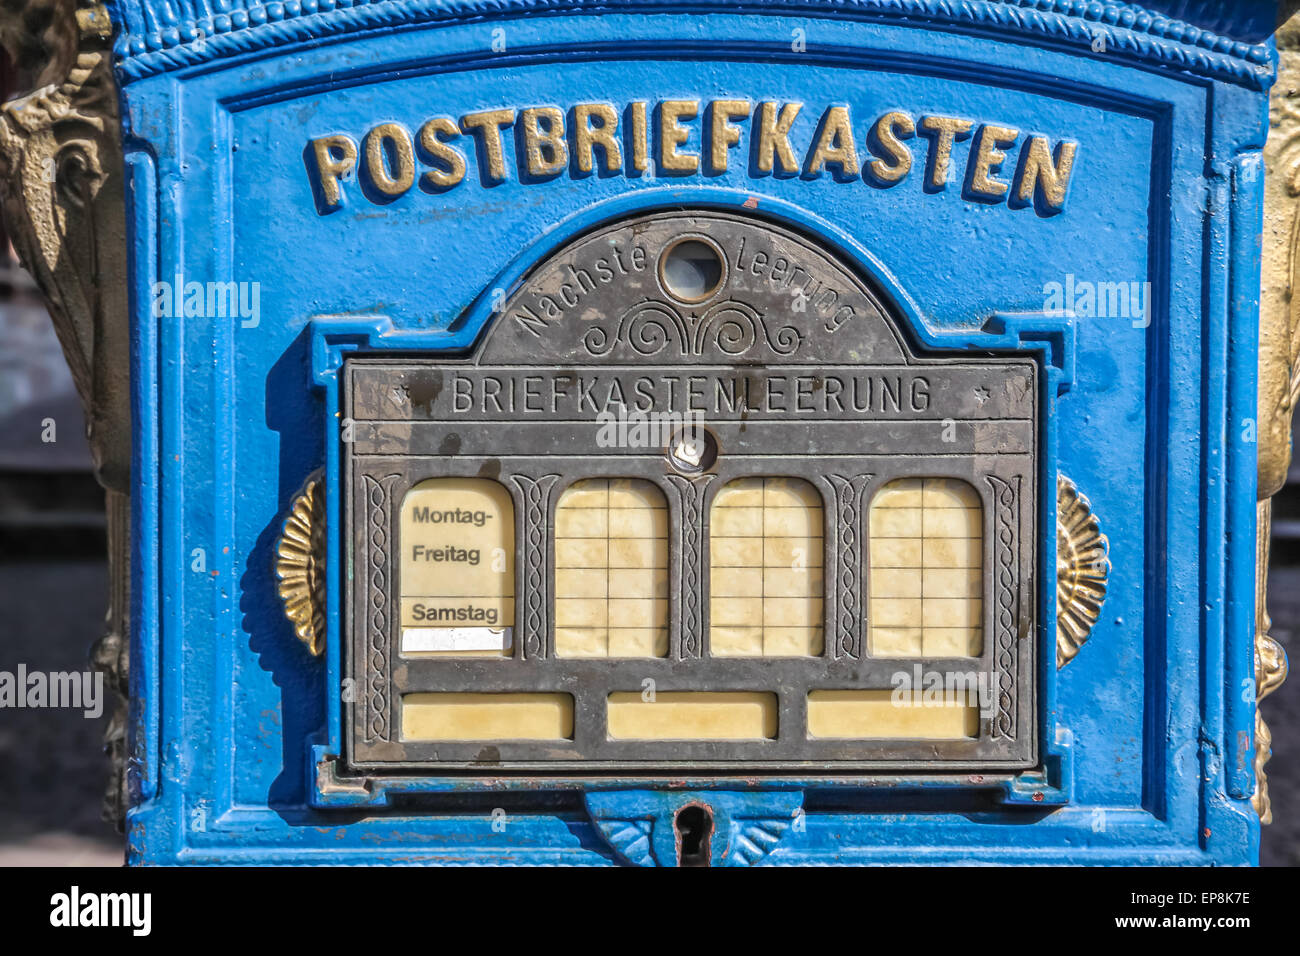 Historical mailbox in the old town of Eltville - Stock Image